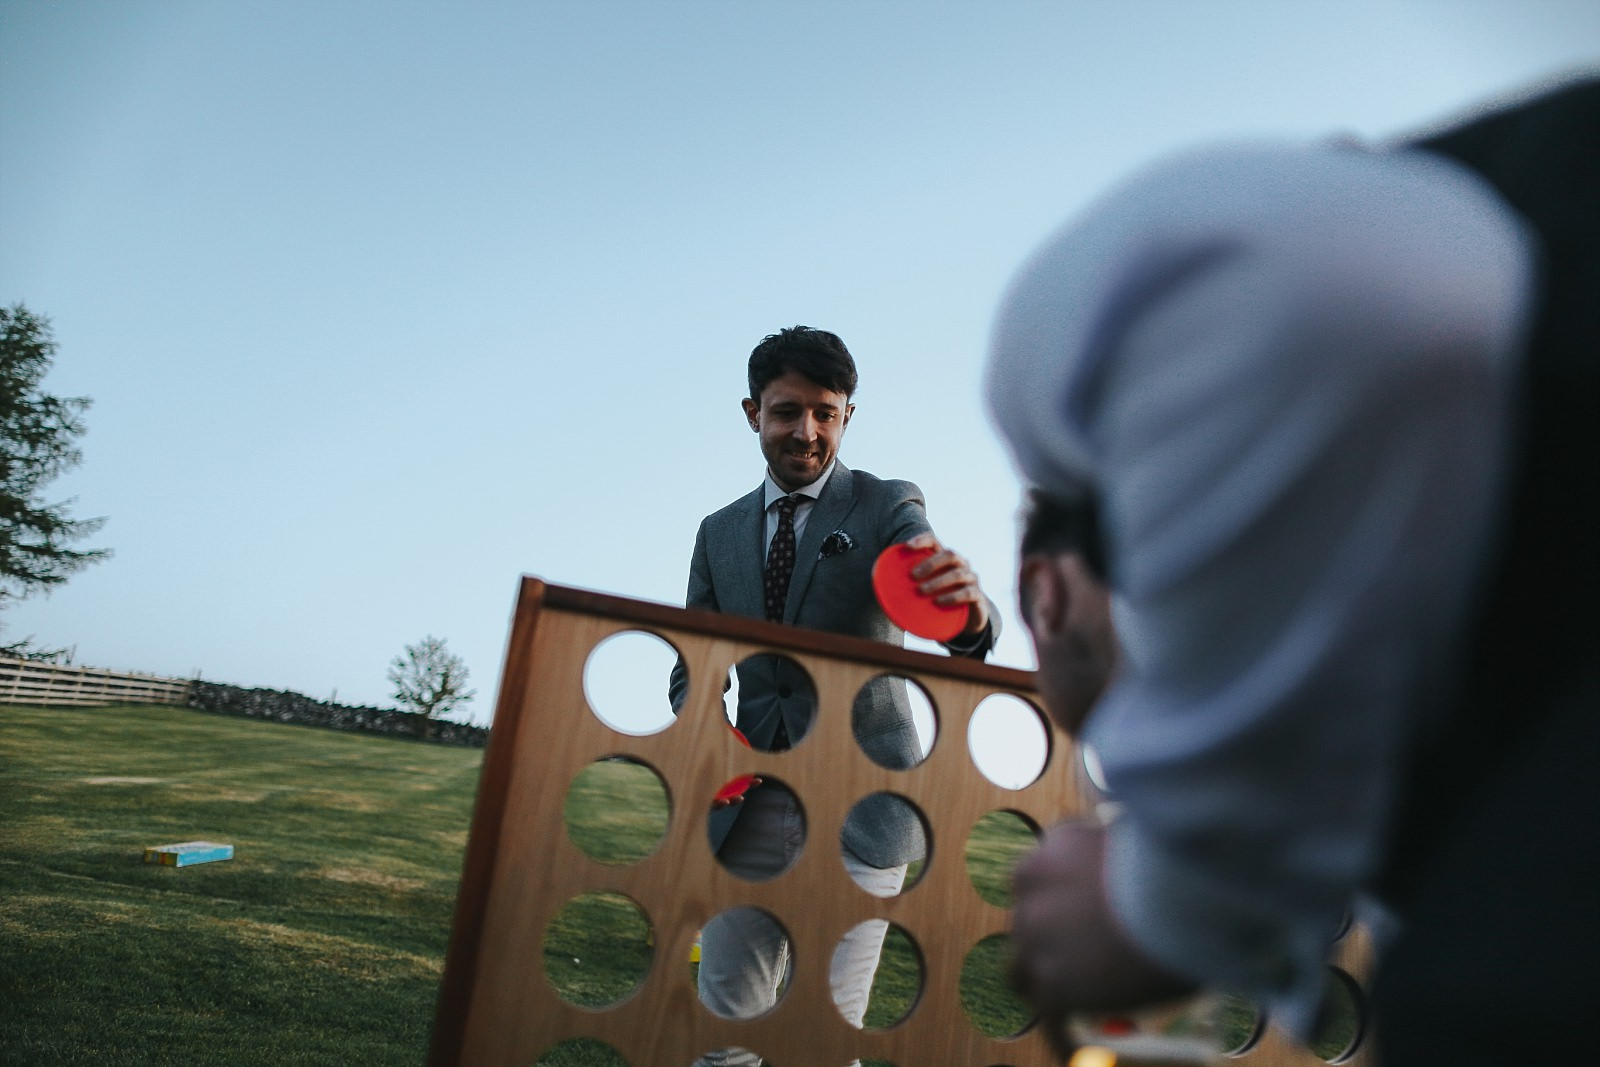 giant connect 4 at a wedding